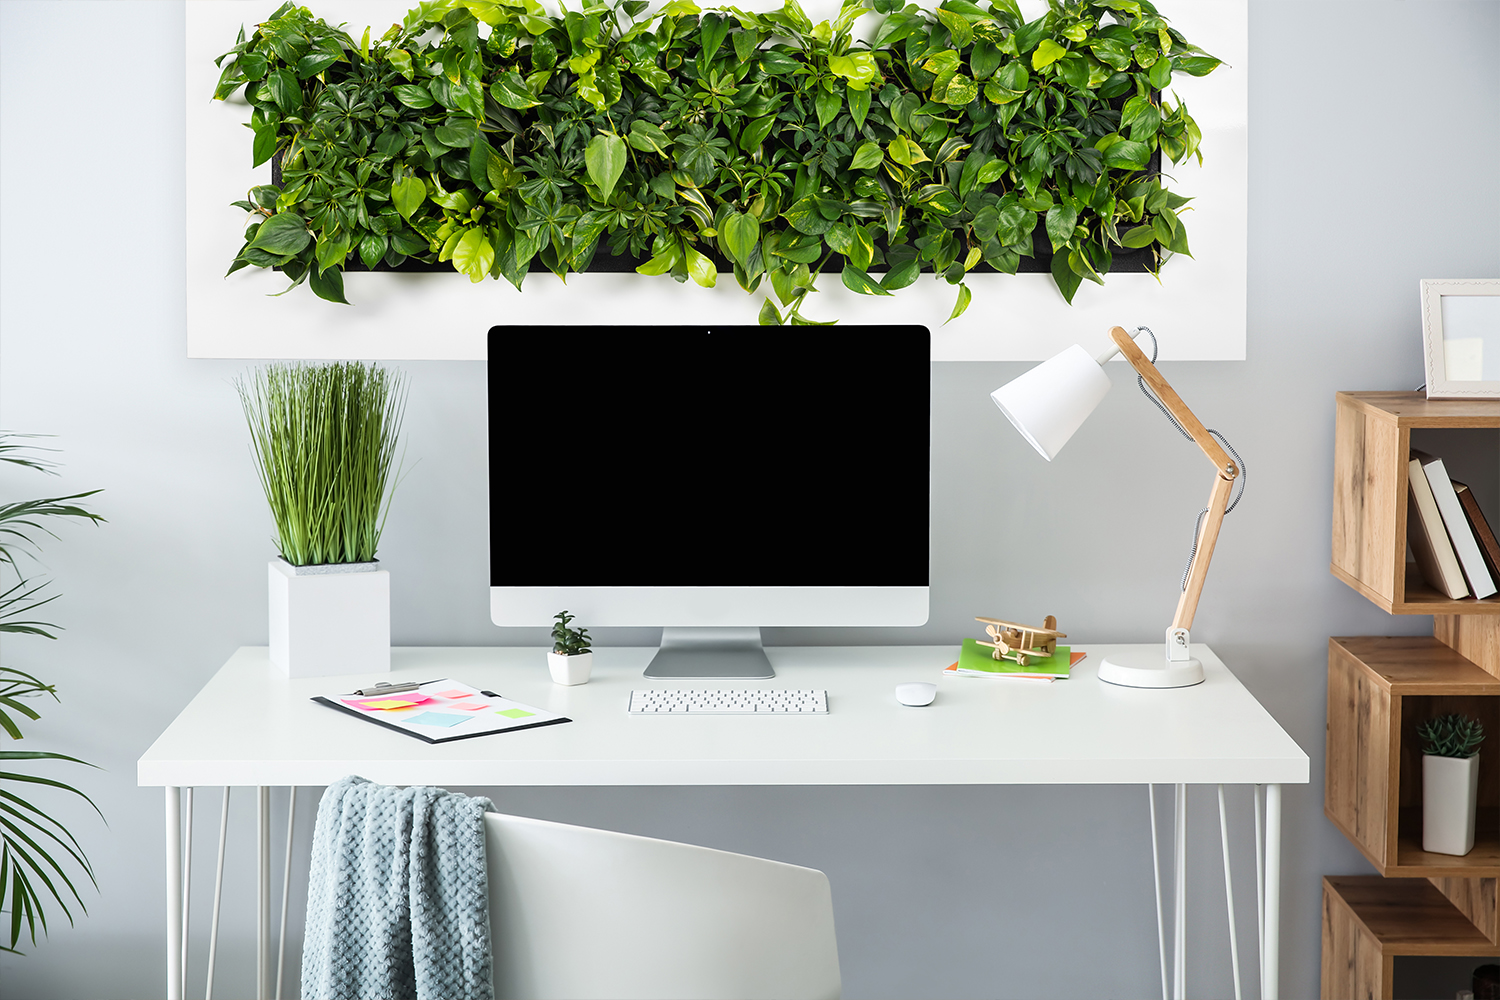 Mobilane LivePicture GO 10 Benefits of plants in home